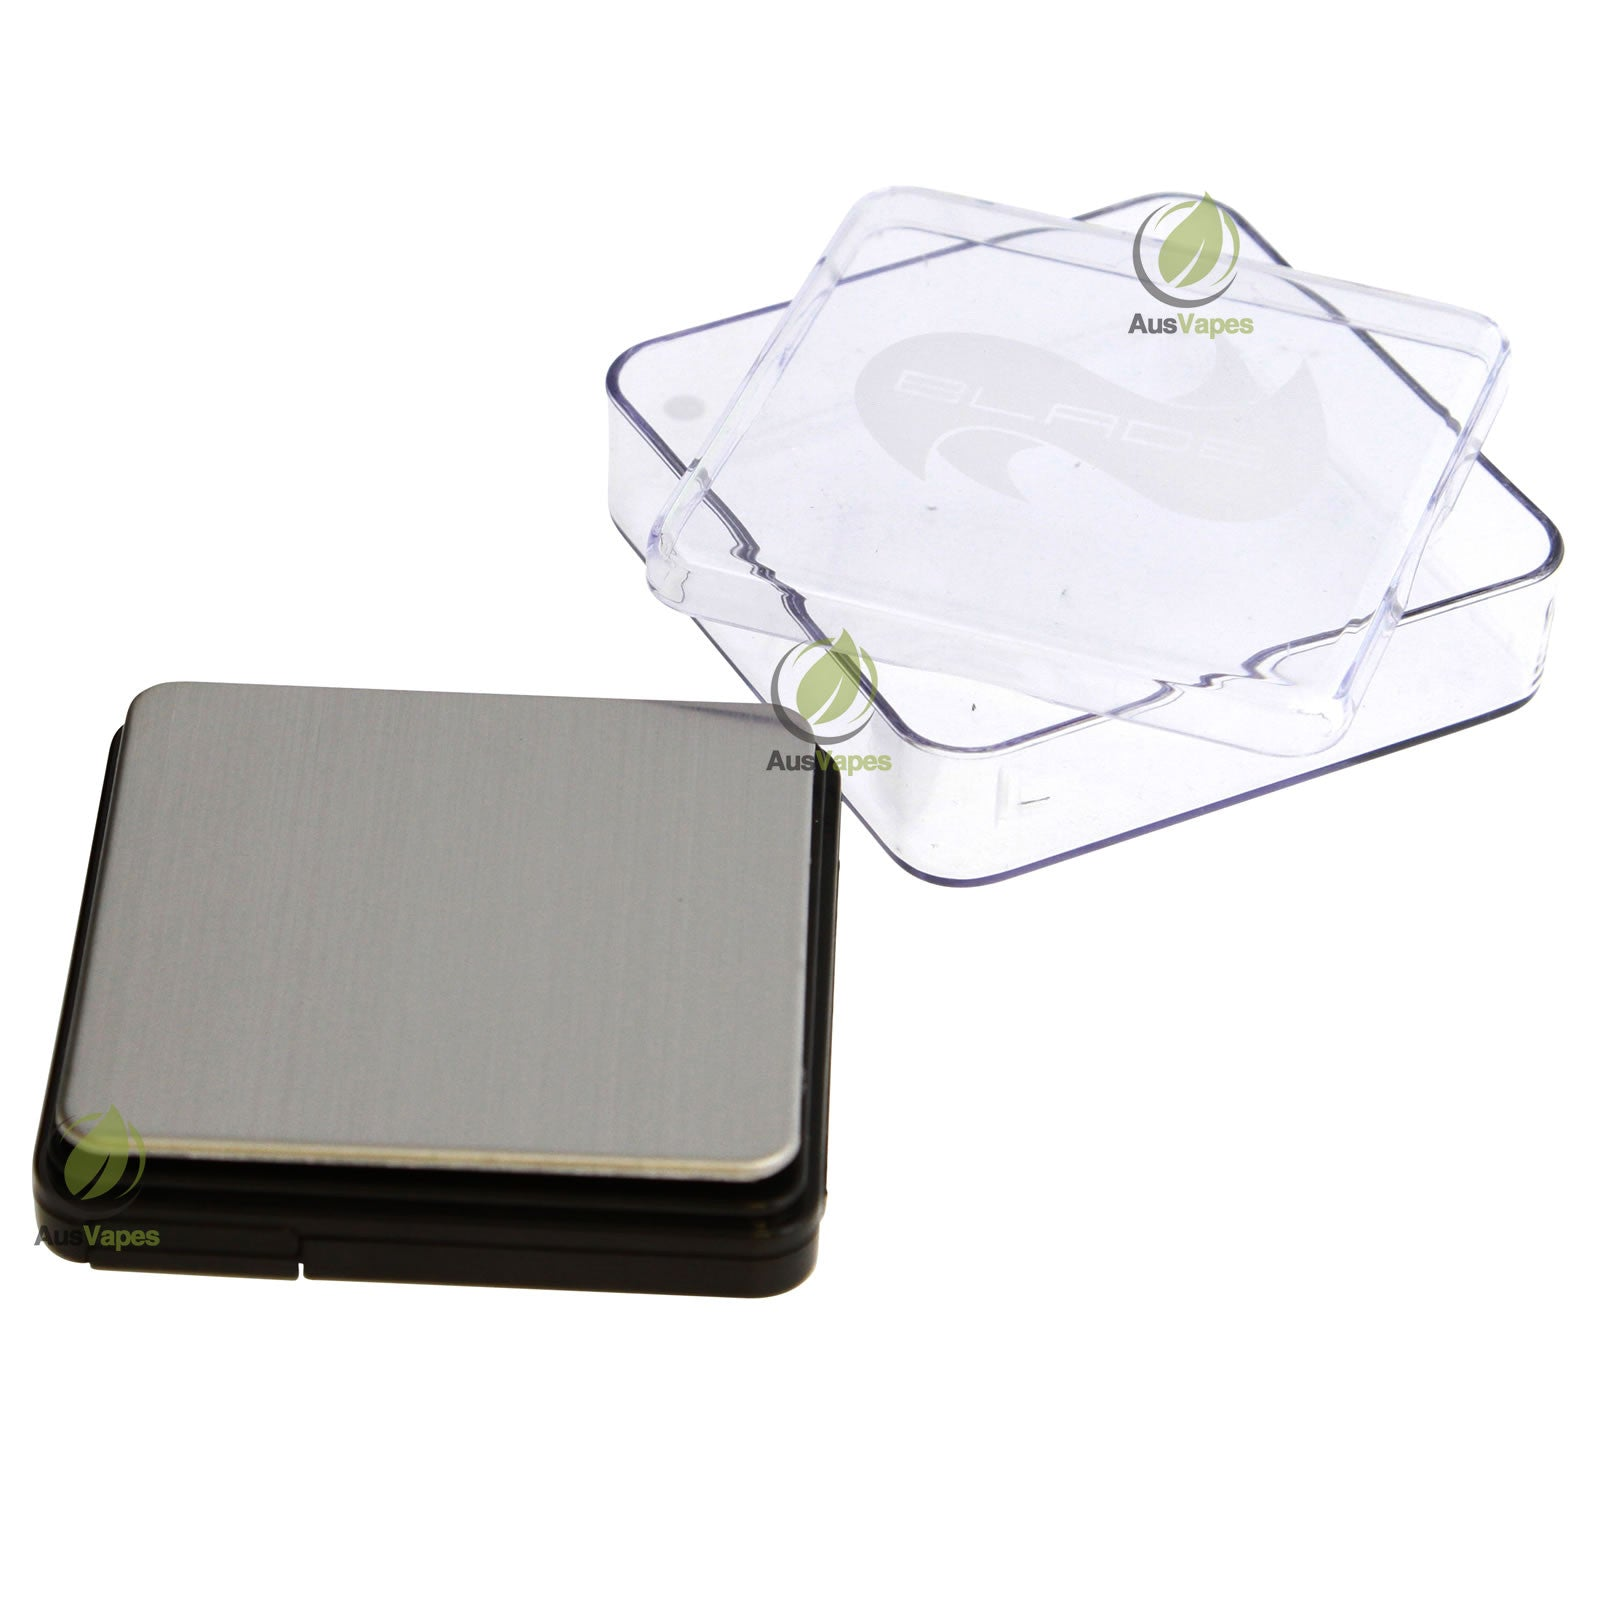 DISCONTINUED AWS BL2-50 Blade Digital Scale with Tray 50g x 0.01g